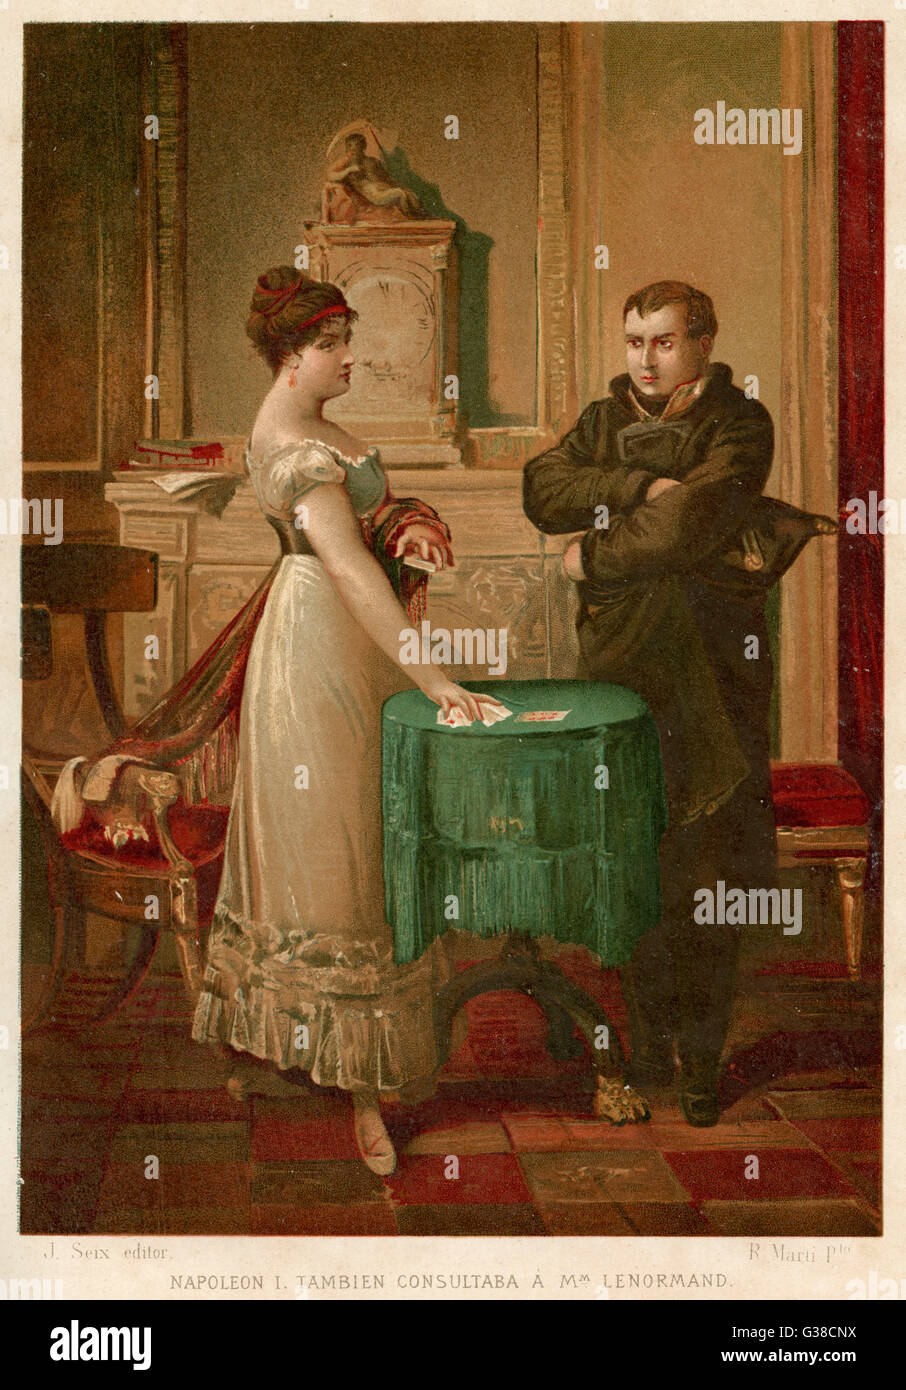 He consults the celebrated  fortune-teller, Madame  Lenormand, who accurately  foresees his destiny       Date: Stock Photo